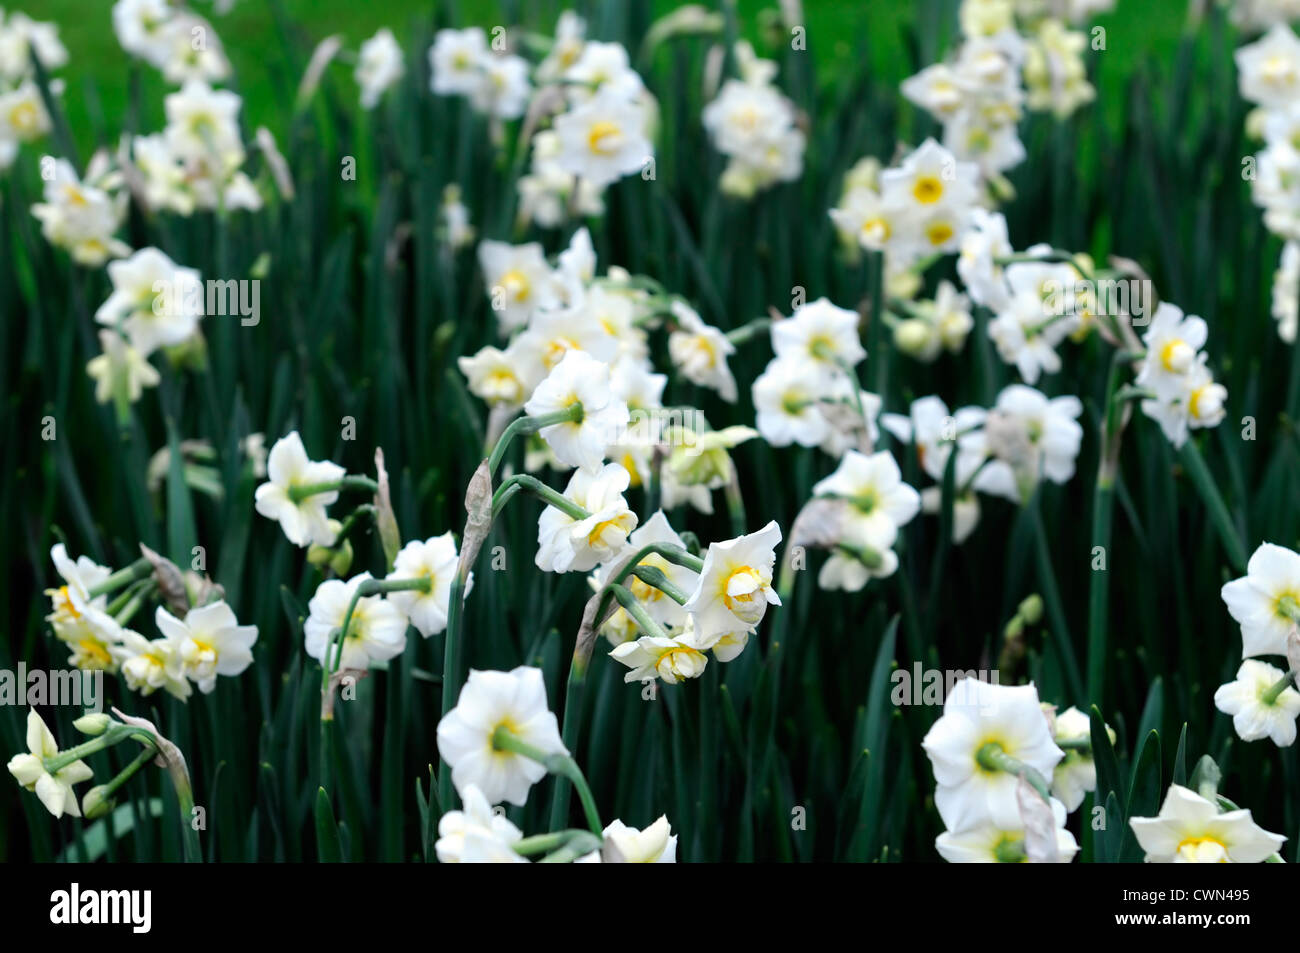 Narcissus cheerfulness white cream double daffodil flowers drift bed spring closeup plant portraits flowering bloom - Stock Image